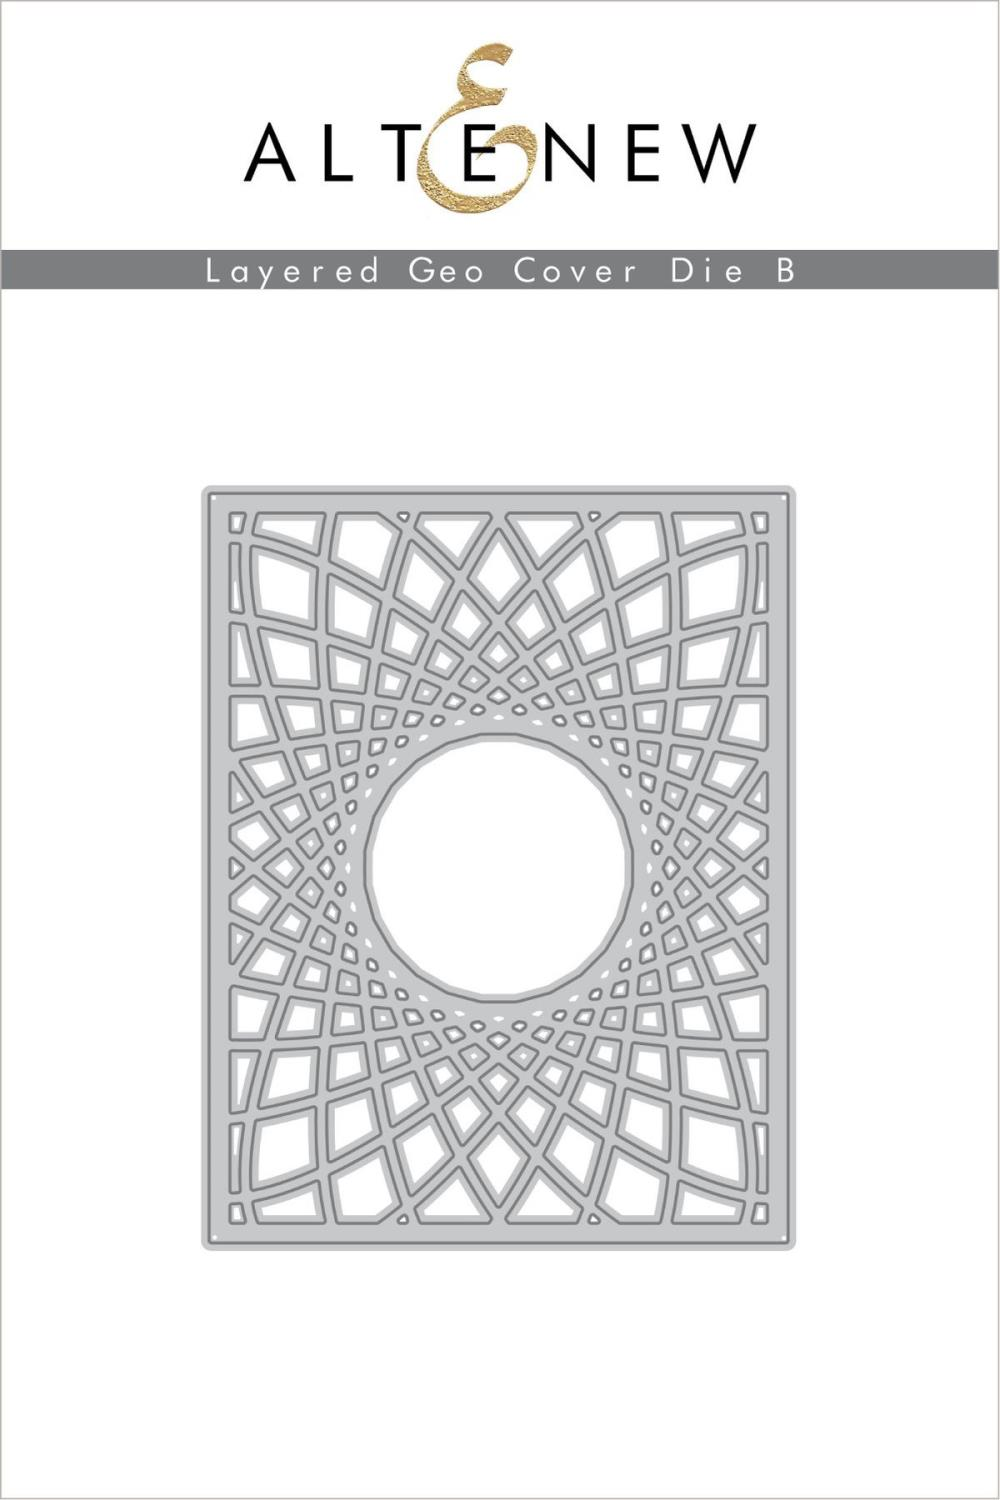 Altenew - Layered Geo Cover Die B